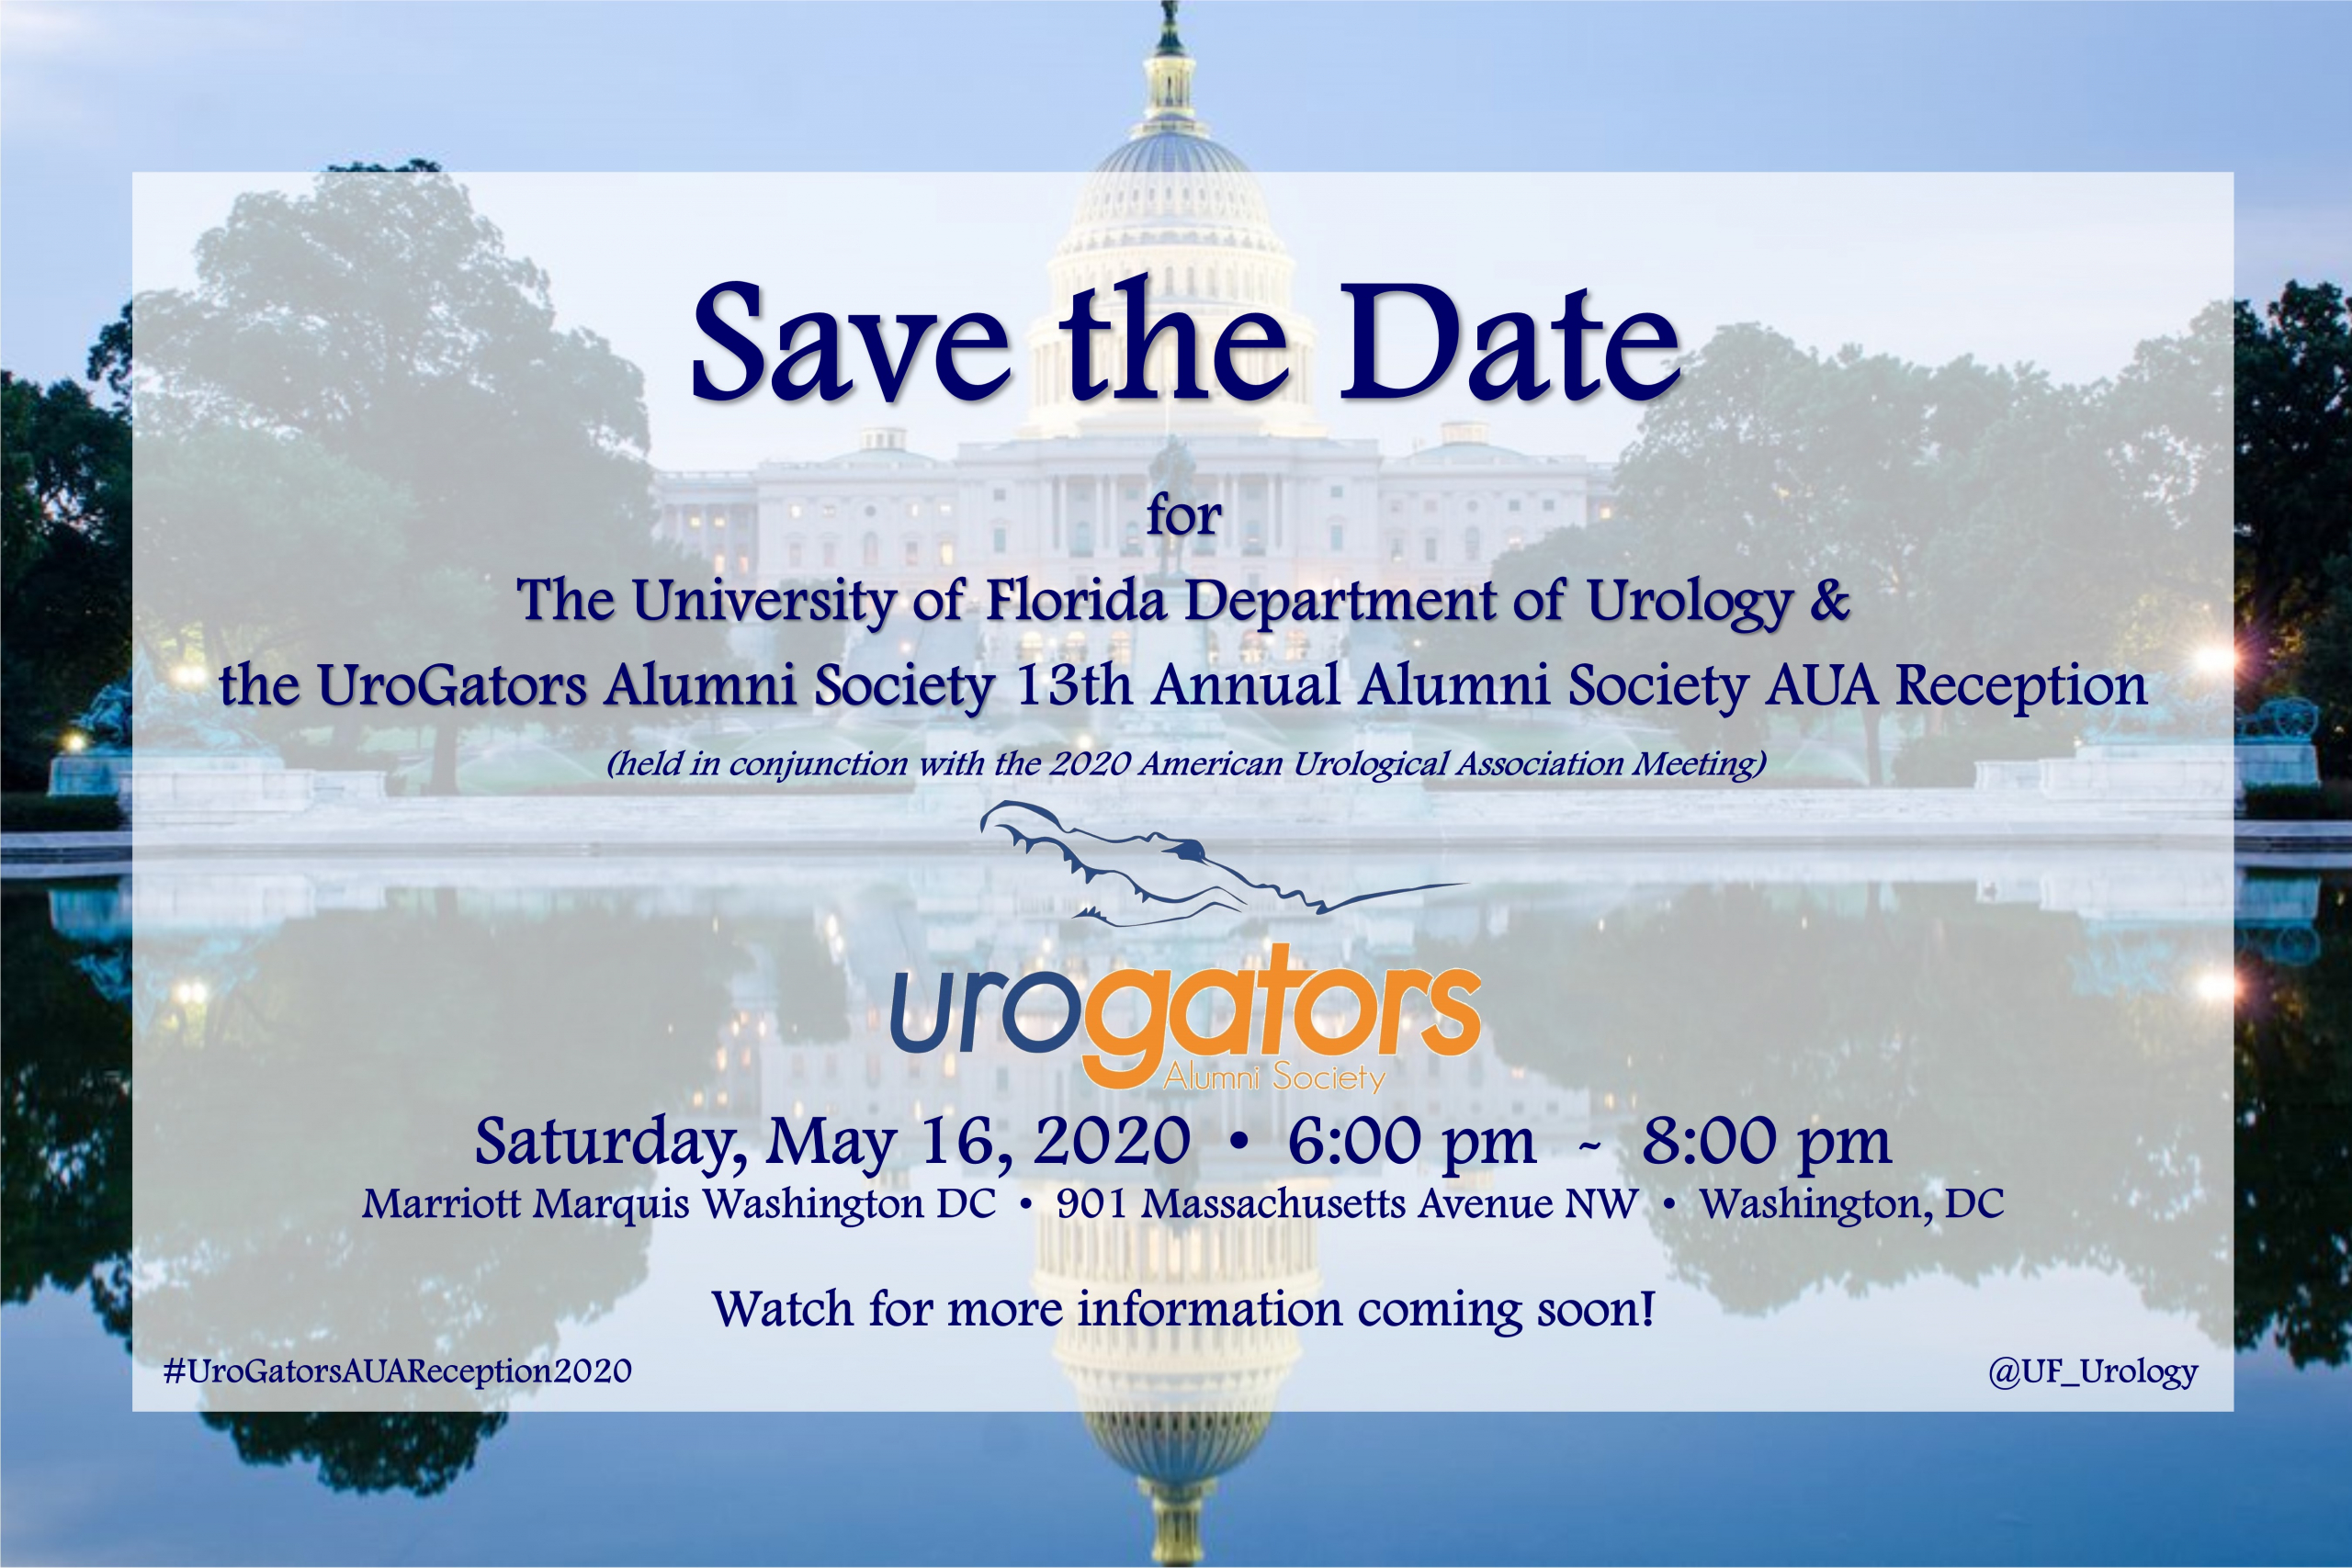 Save the Date for The University of Florida Department of Urology & the UroGators Alumni Society 13th Annual Alumni Society AUA Reception  (held in conjunction with the 2020 American Urological Association Meeting) Saturday, May 16, 2020 from 6:00 pm  -  8:00 pm at the Marriott Marquis Washington DC , 901 Massachusetts Avenue NW , Washington, DC.  Watch for more information coming soon!